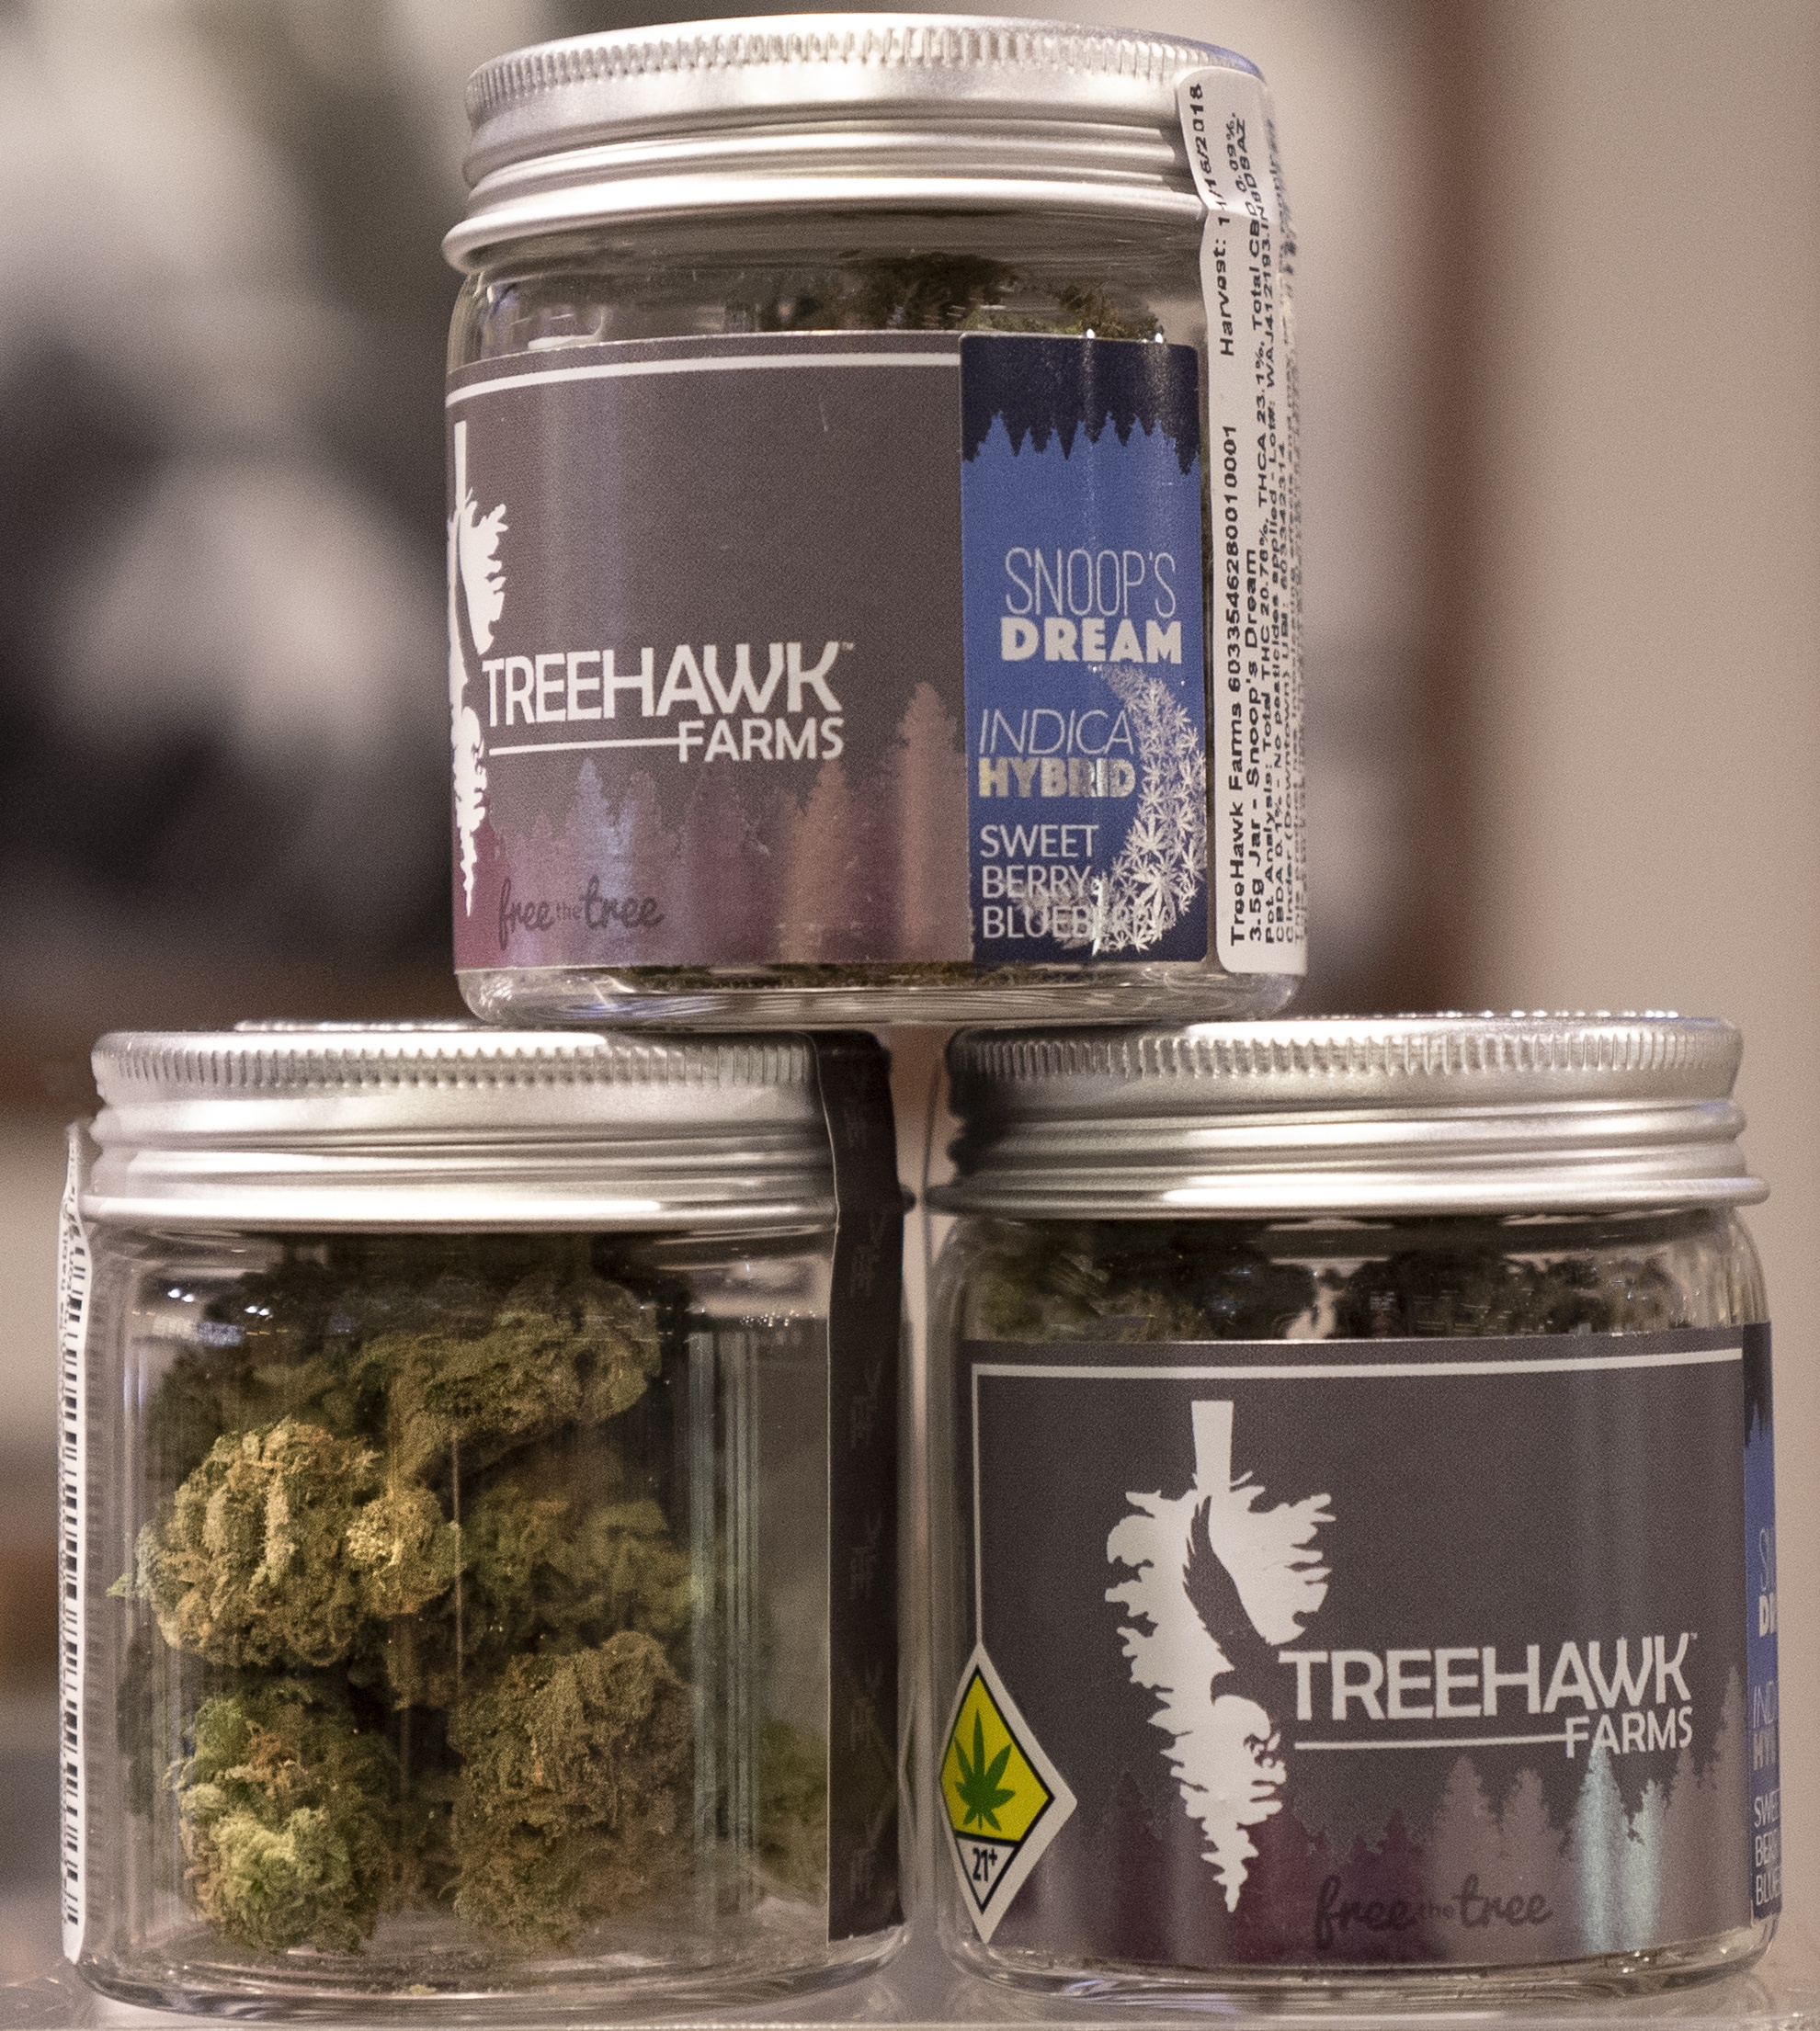 The Budtender's Review Corner: Treehawk Farms' Snoop's Dream